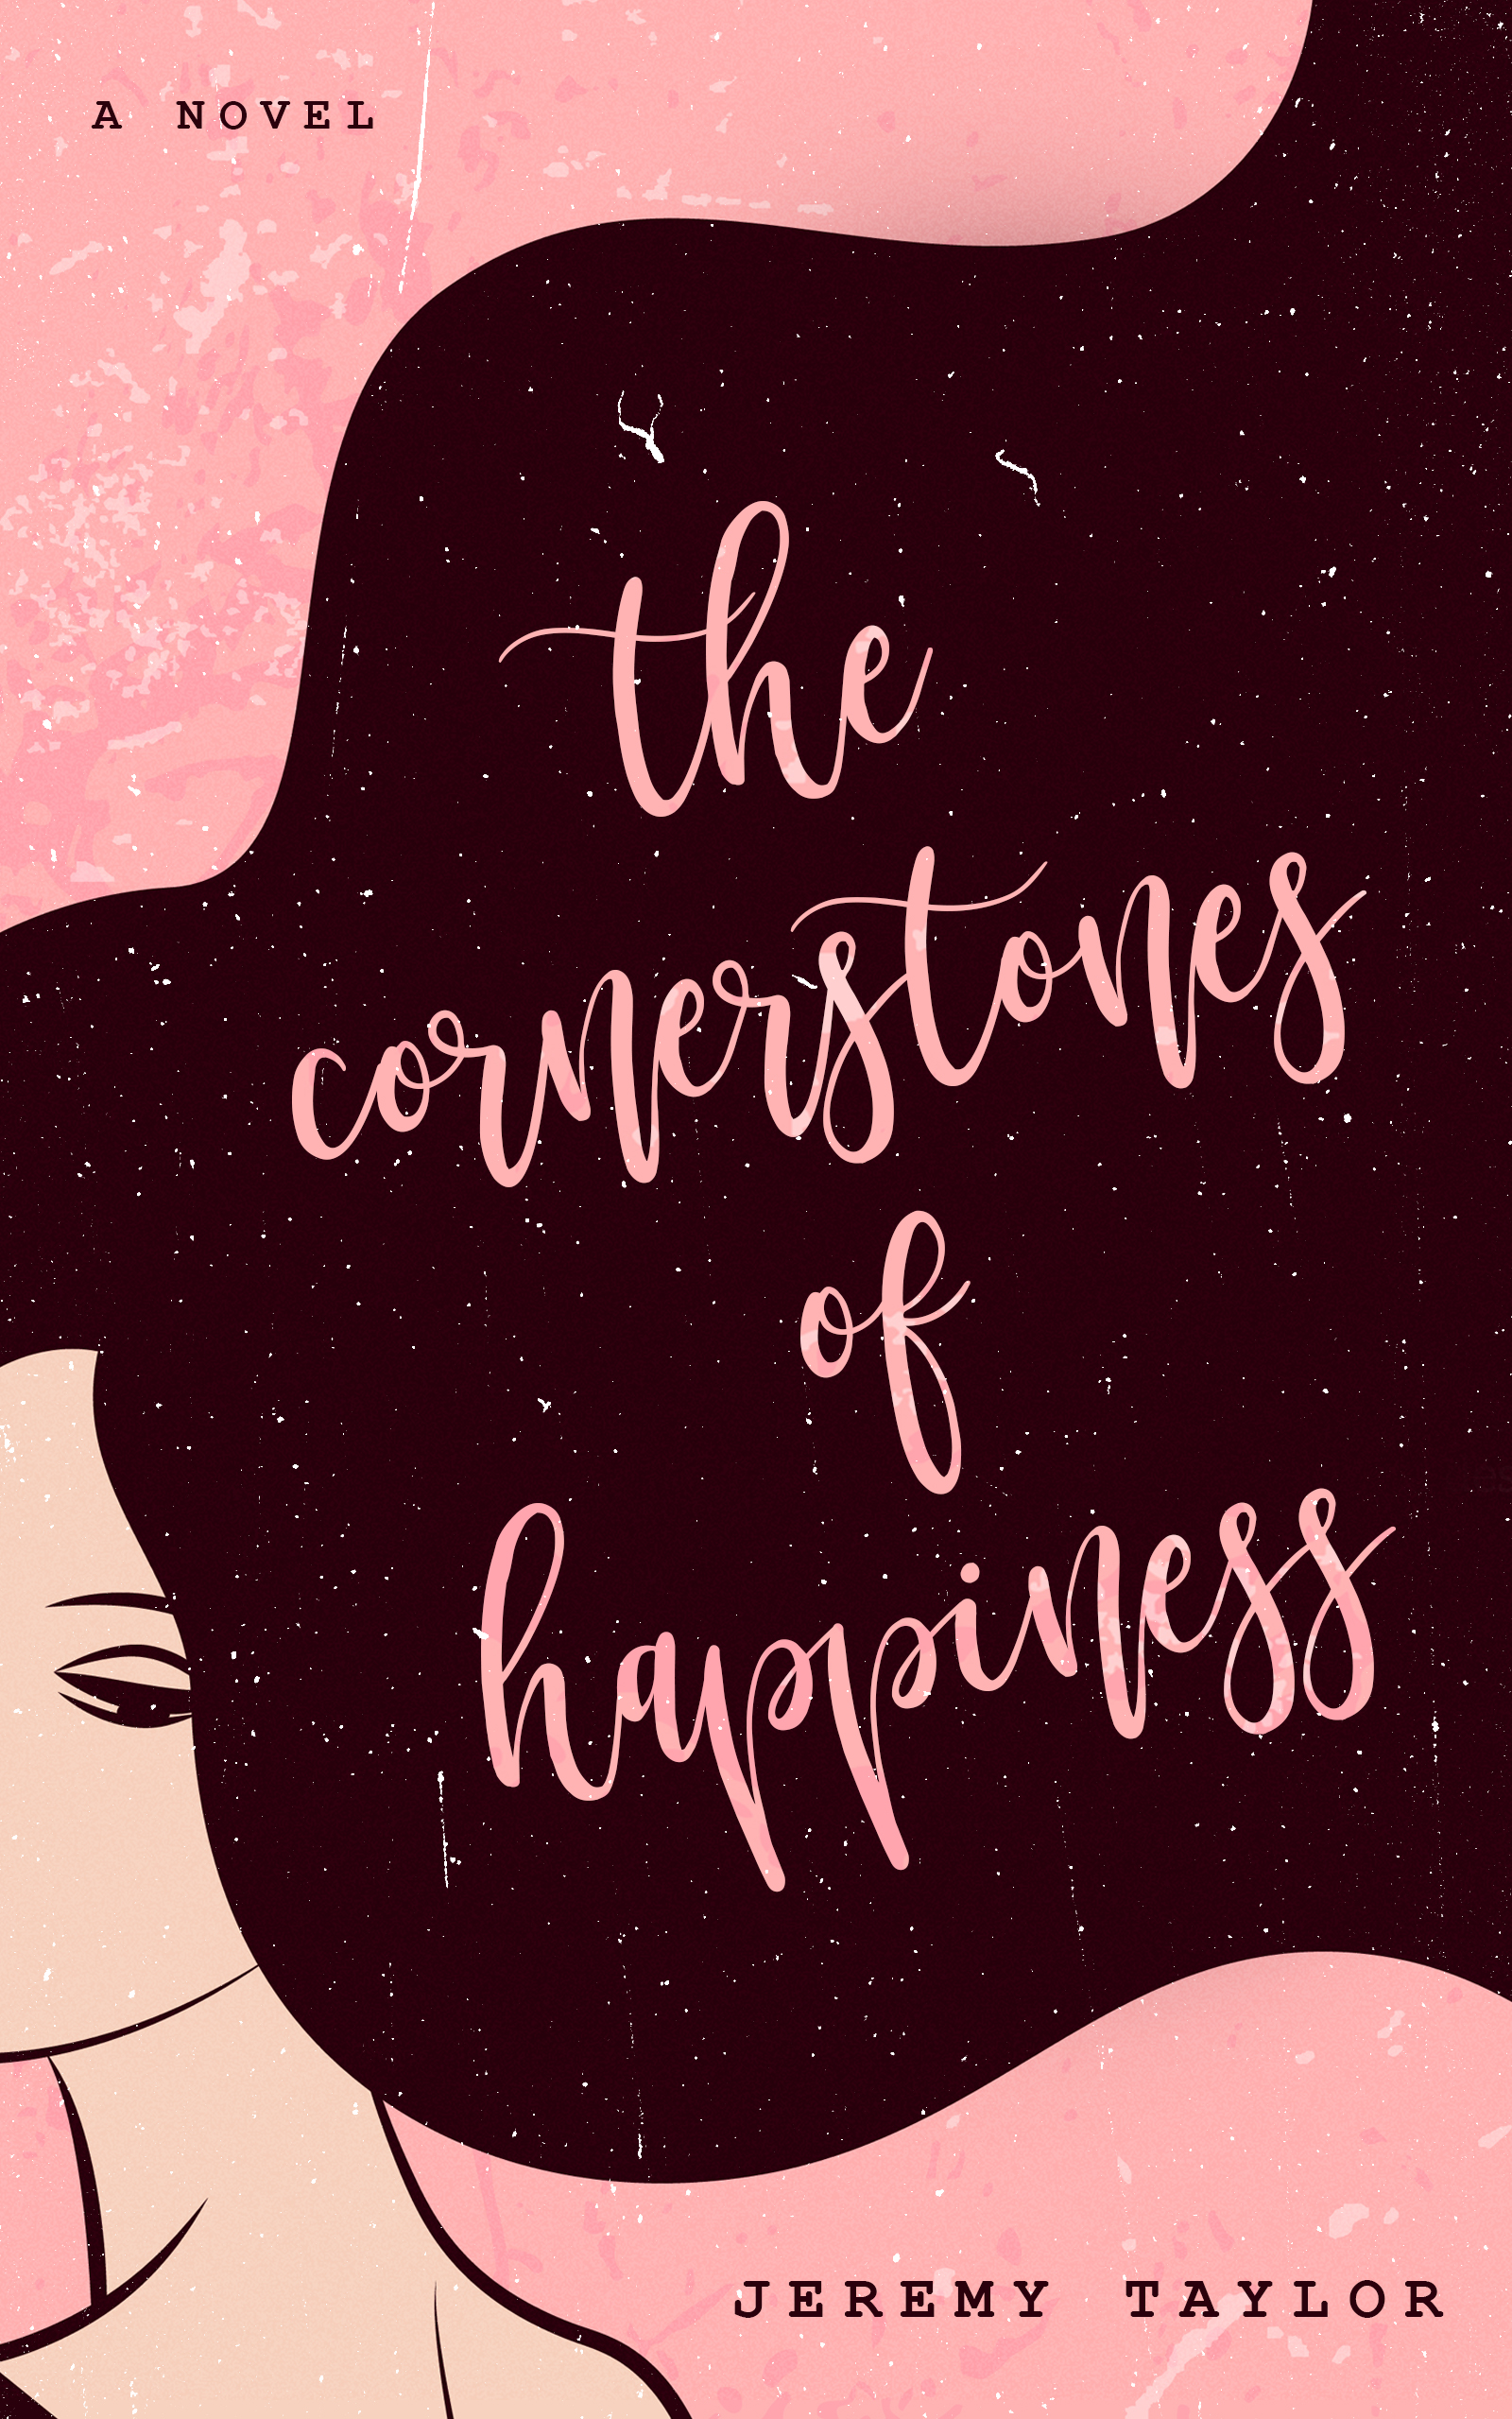 The Cornerstones of Happiness